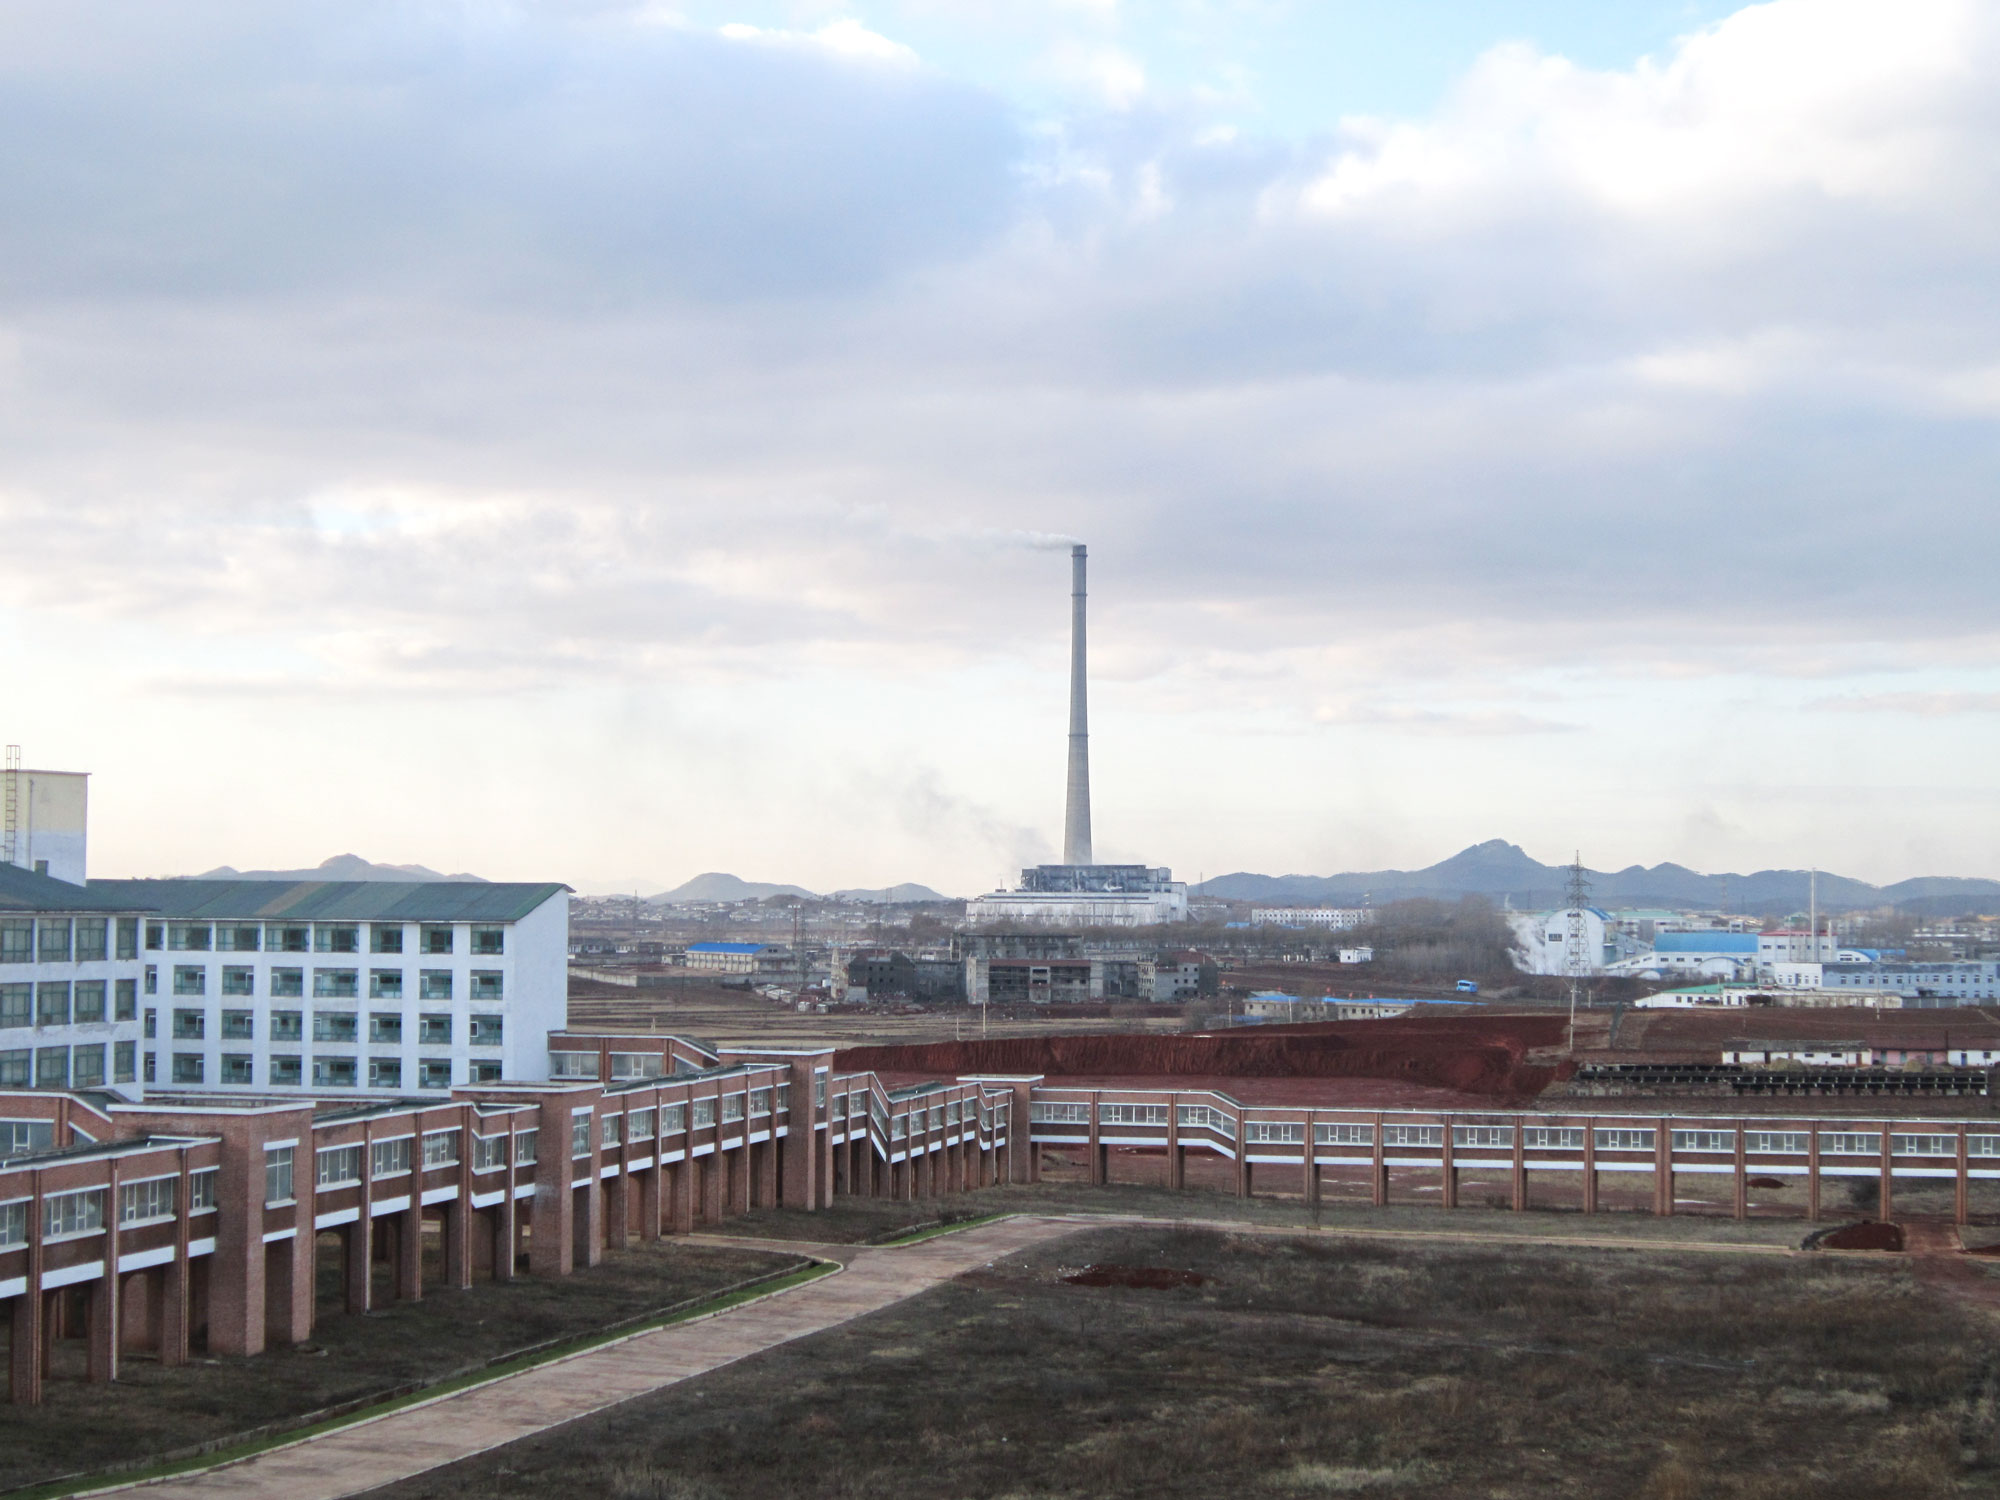 The PUST campus: the enclosed walkway connects all the buildings. The classroom building is on the left; a Pyongyang smokestack can be seen in the distance.